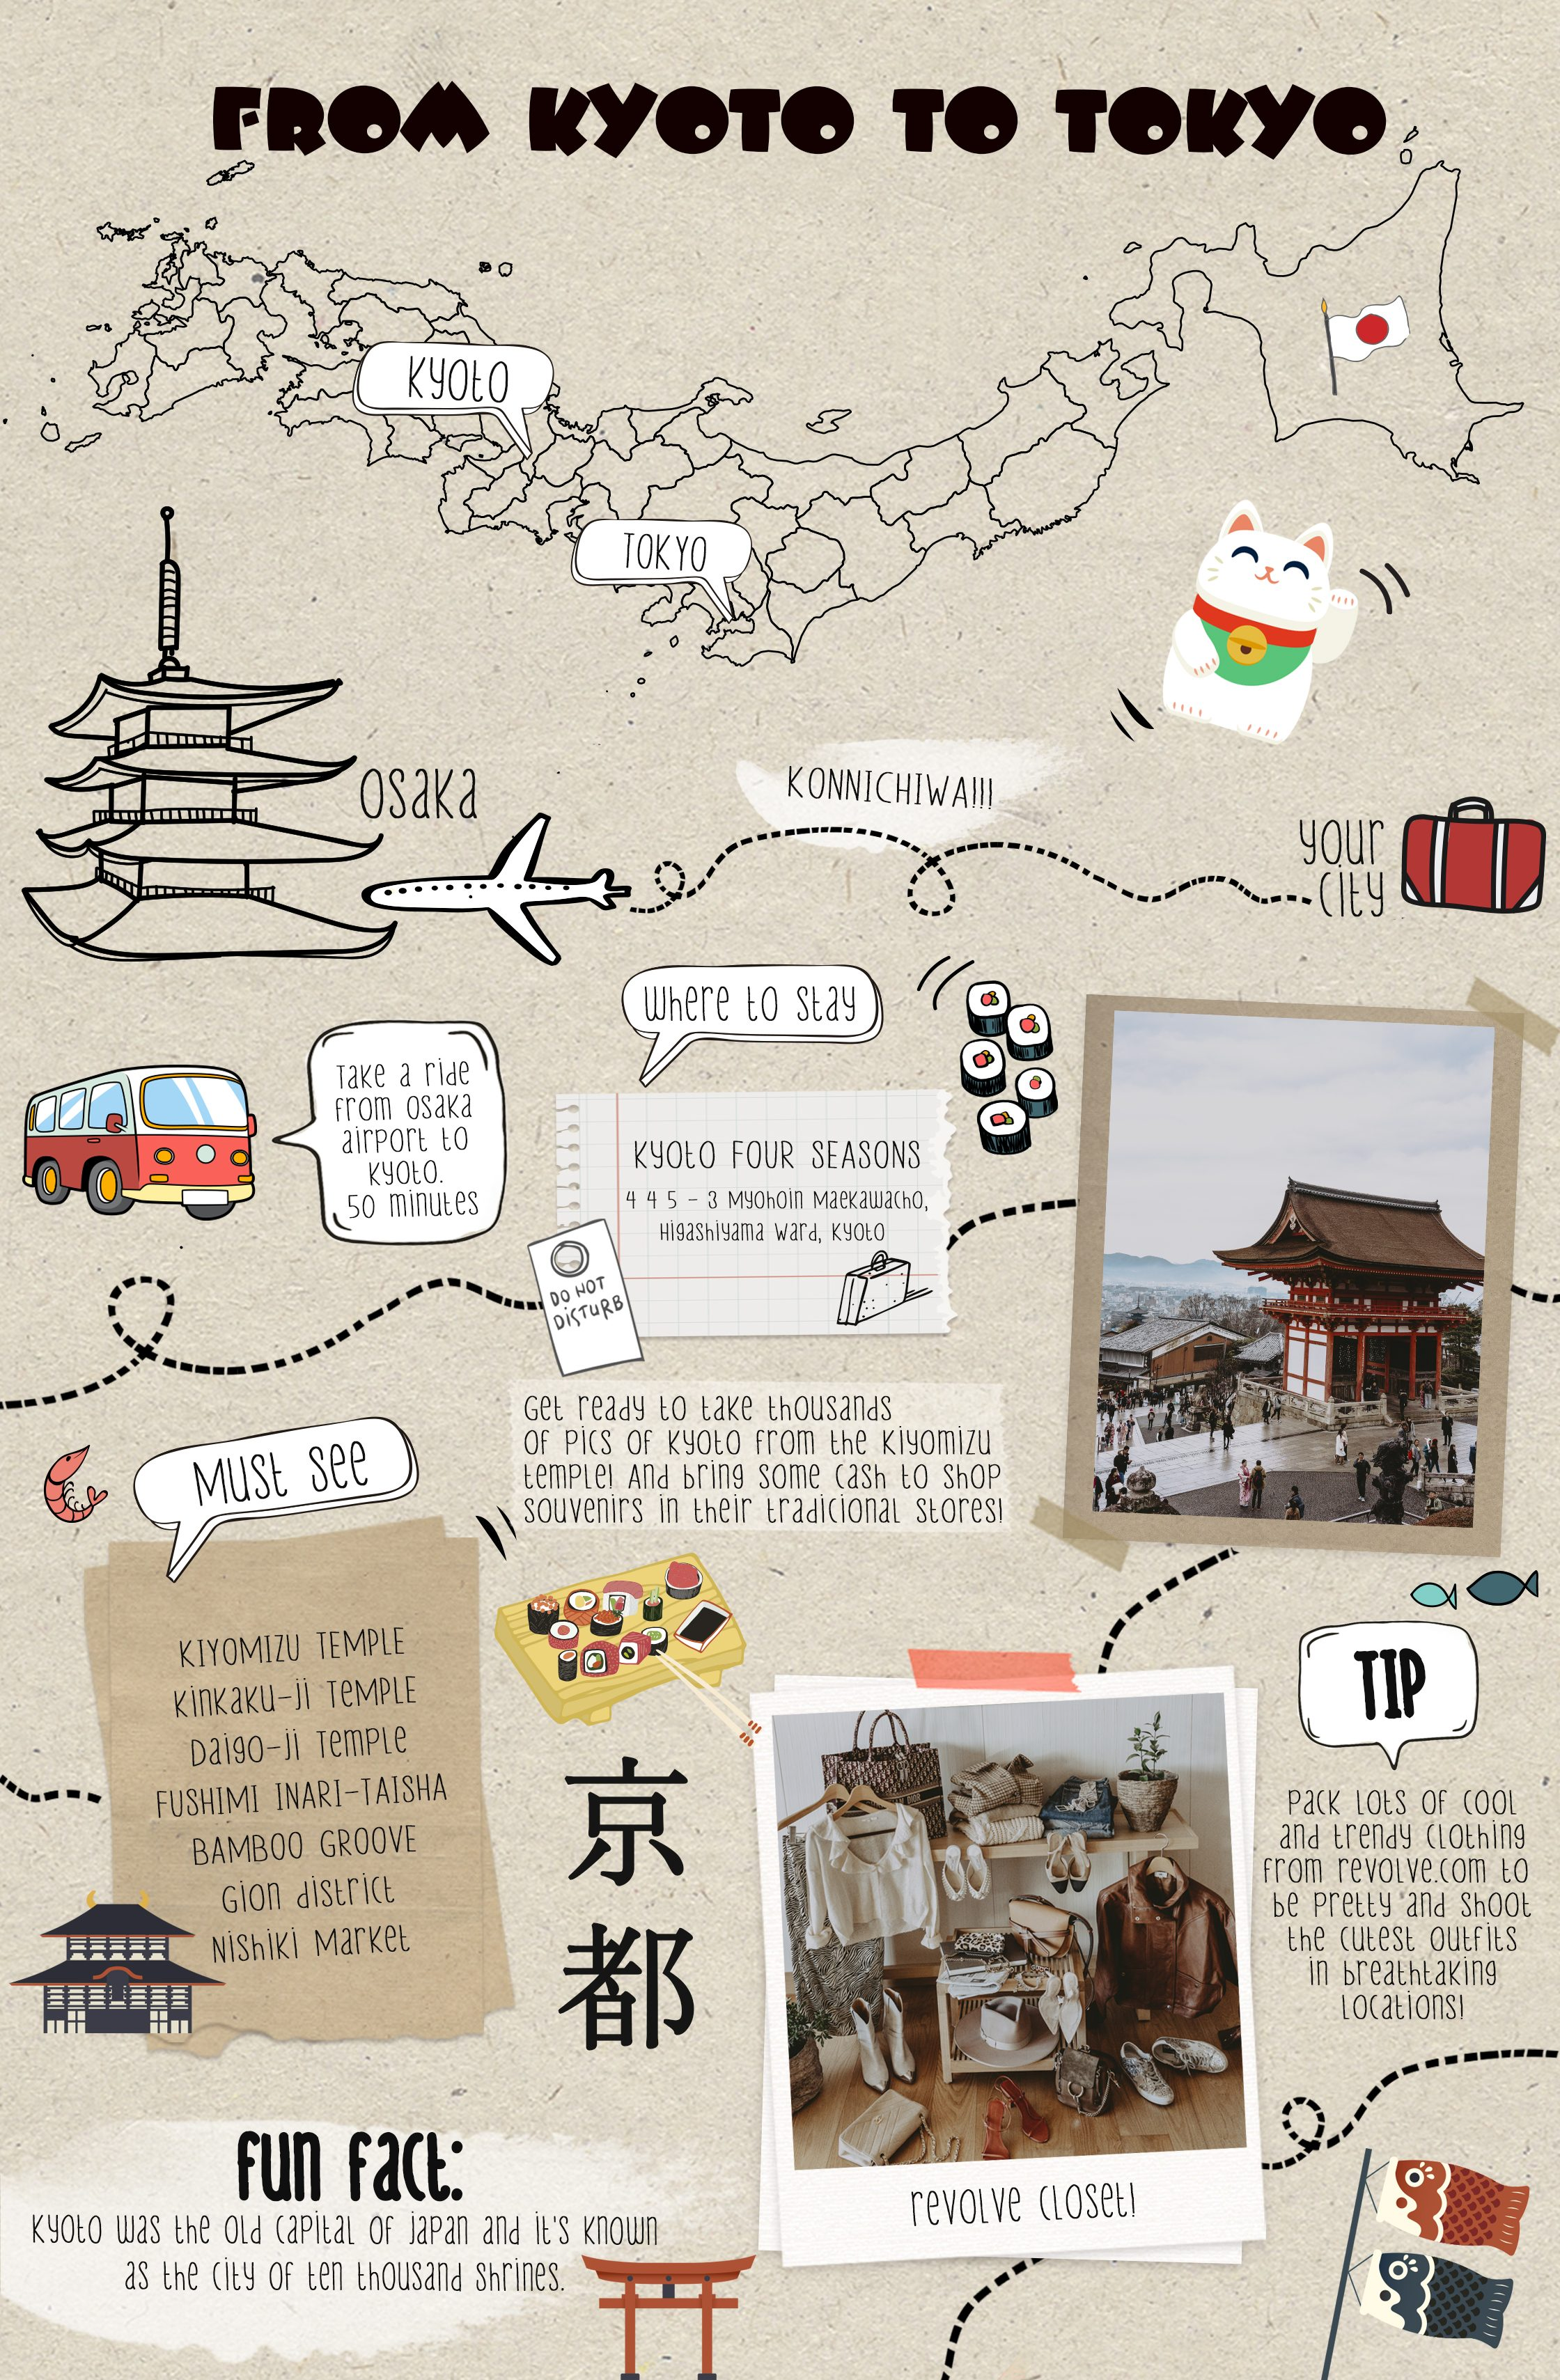 TRAVEL GUIDE: From Kyoto to TOkyo